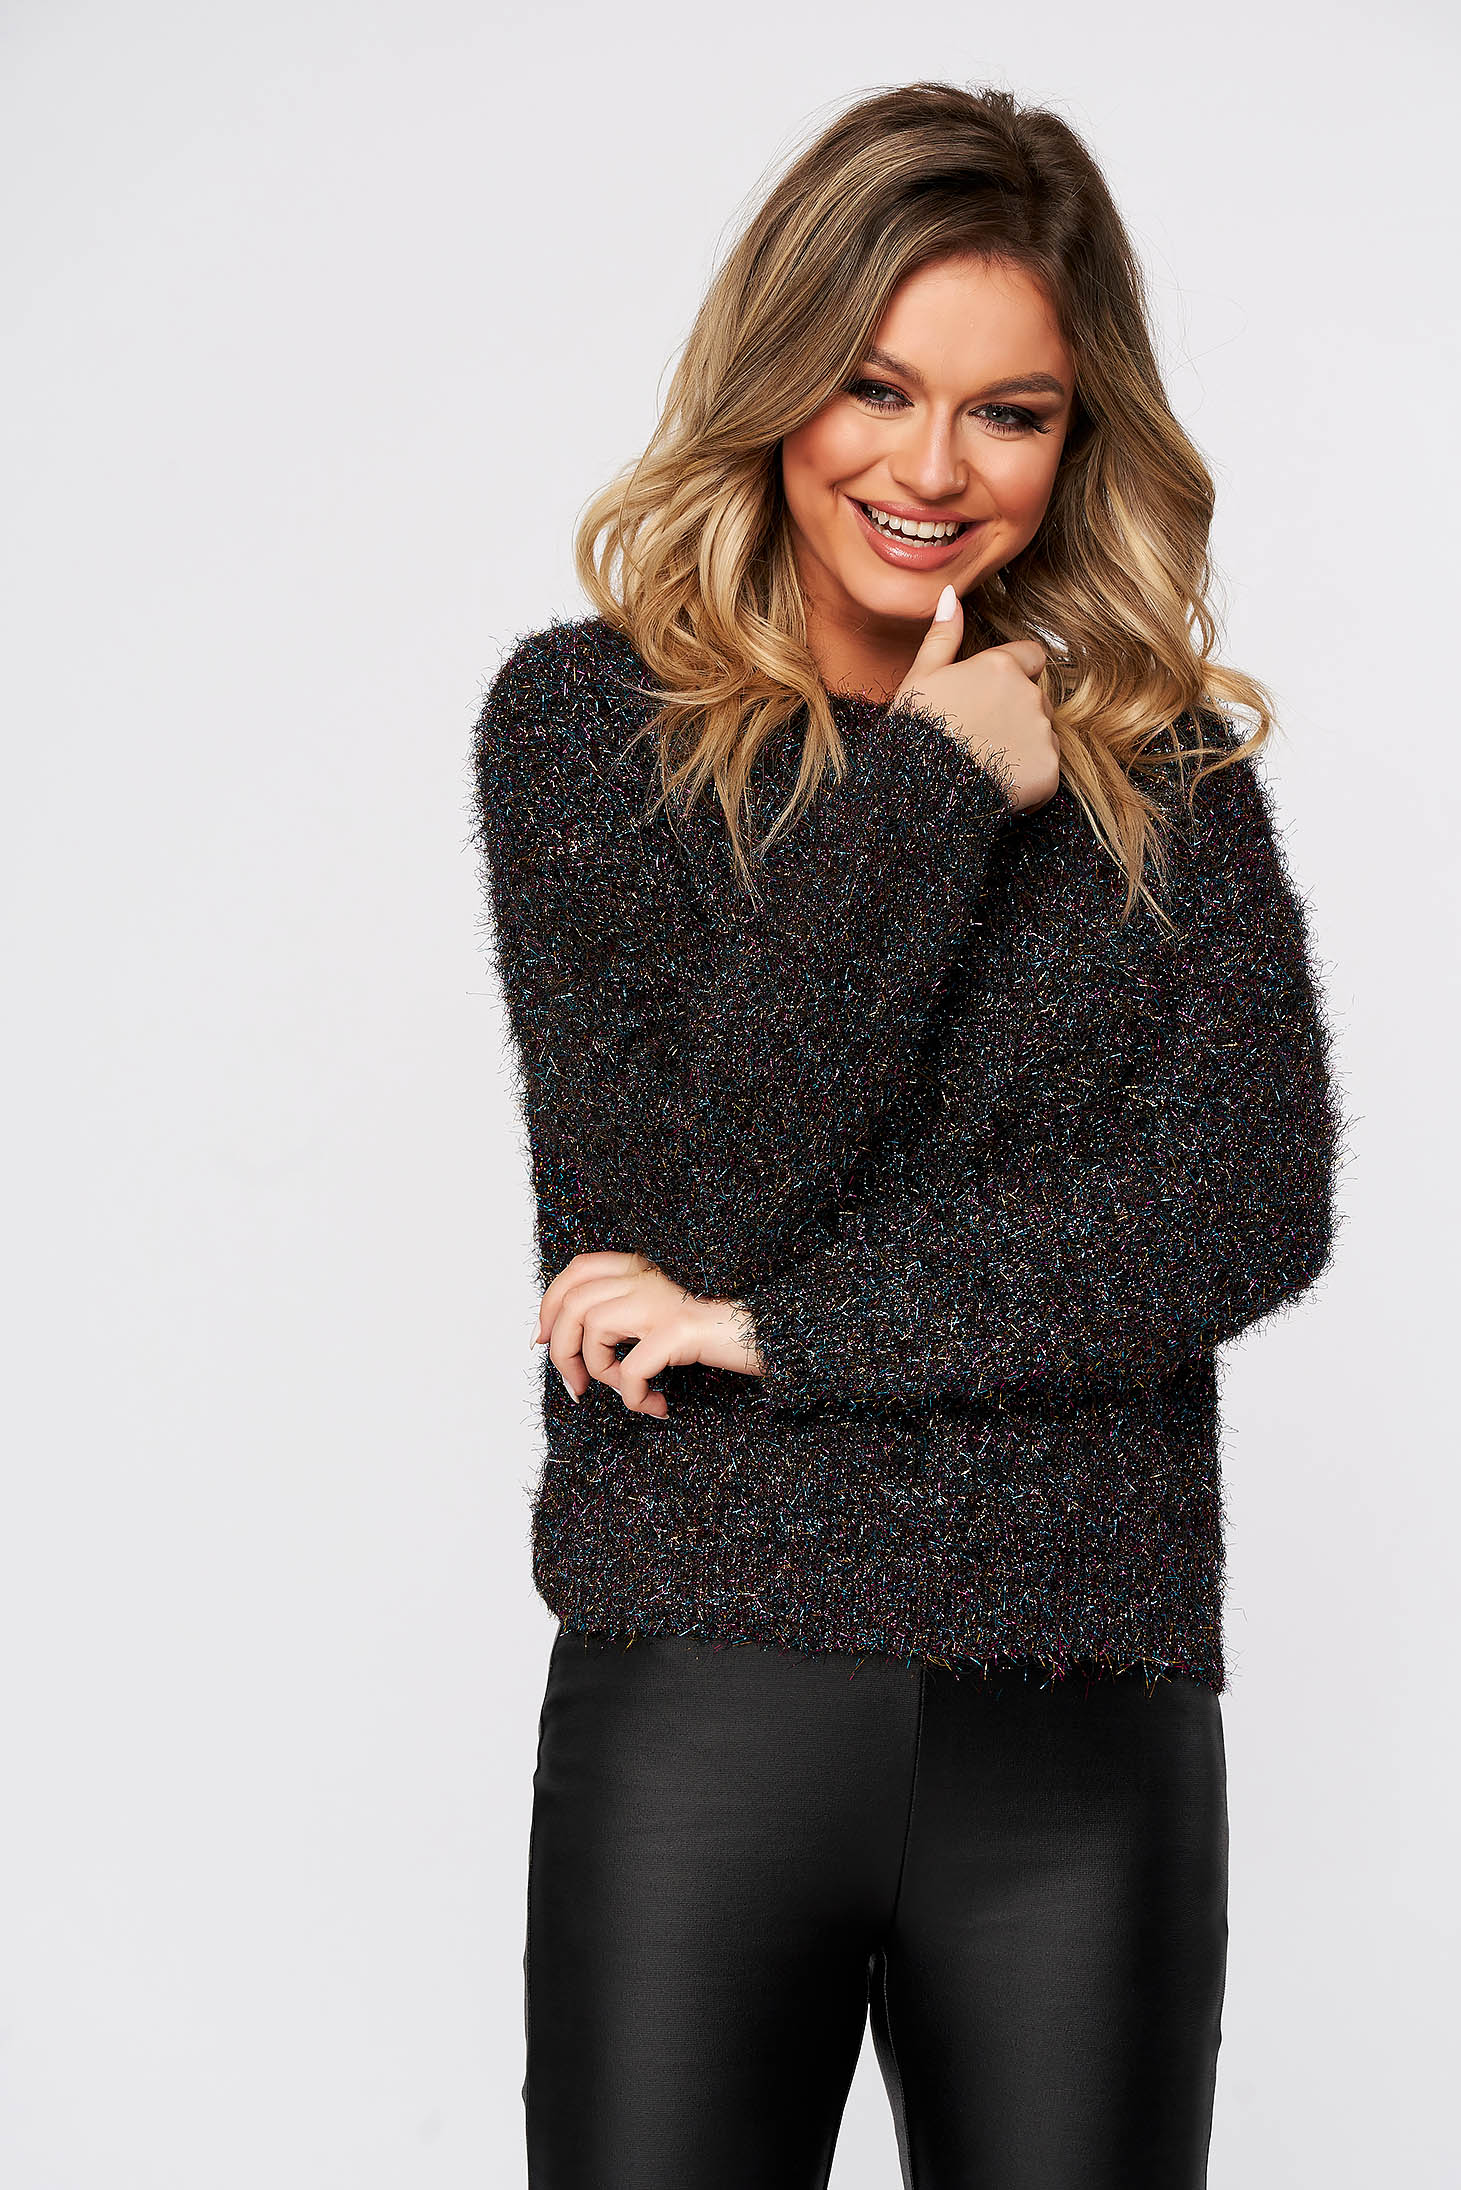 Black sweater casual flared knitted fabric